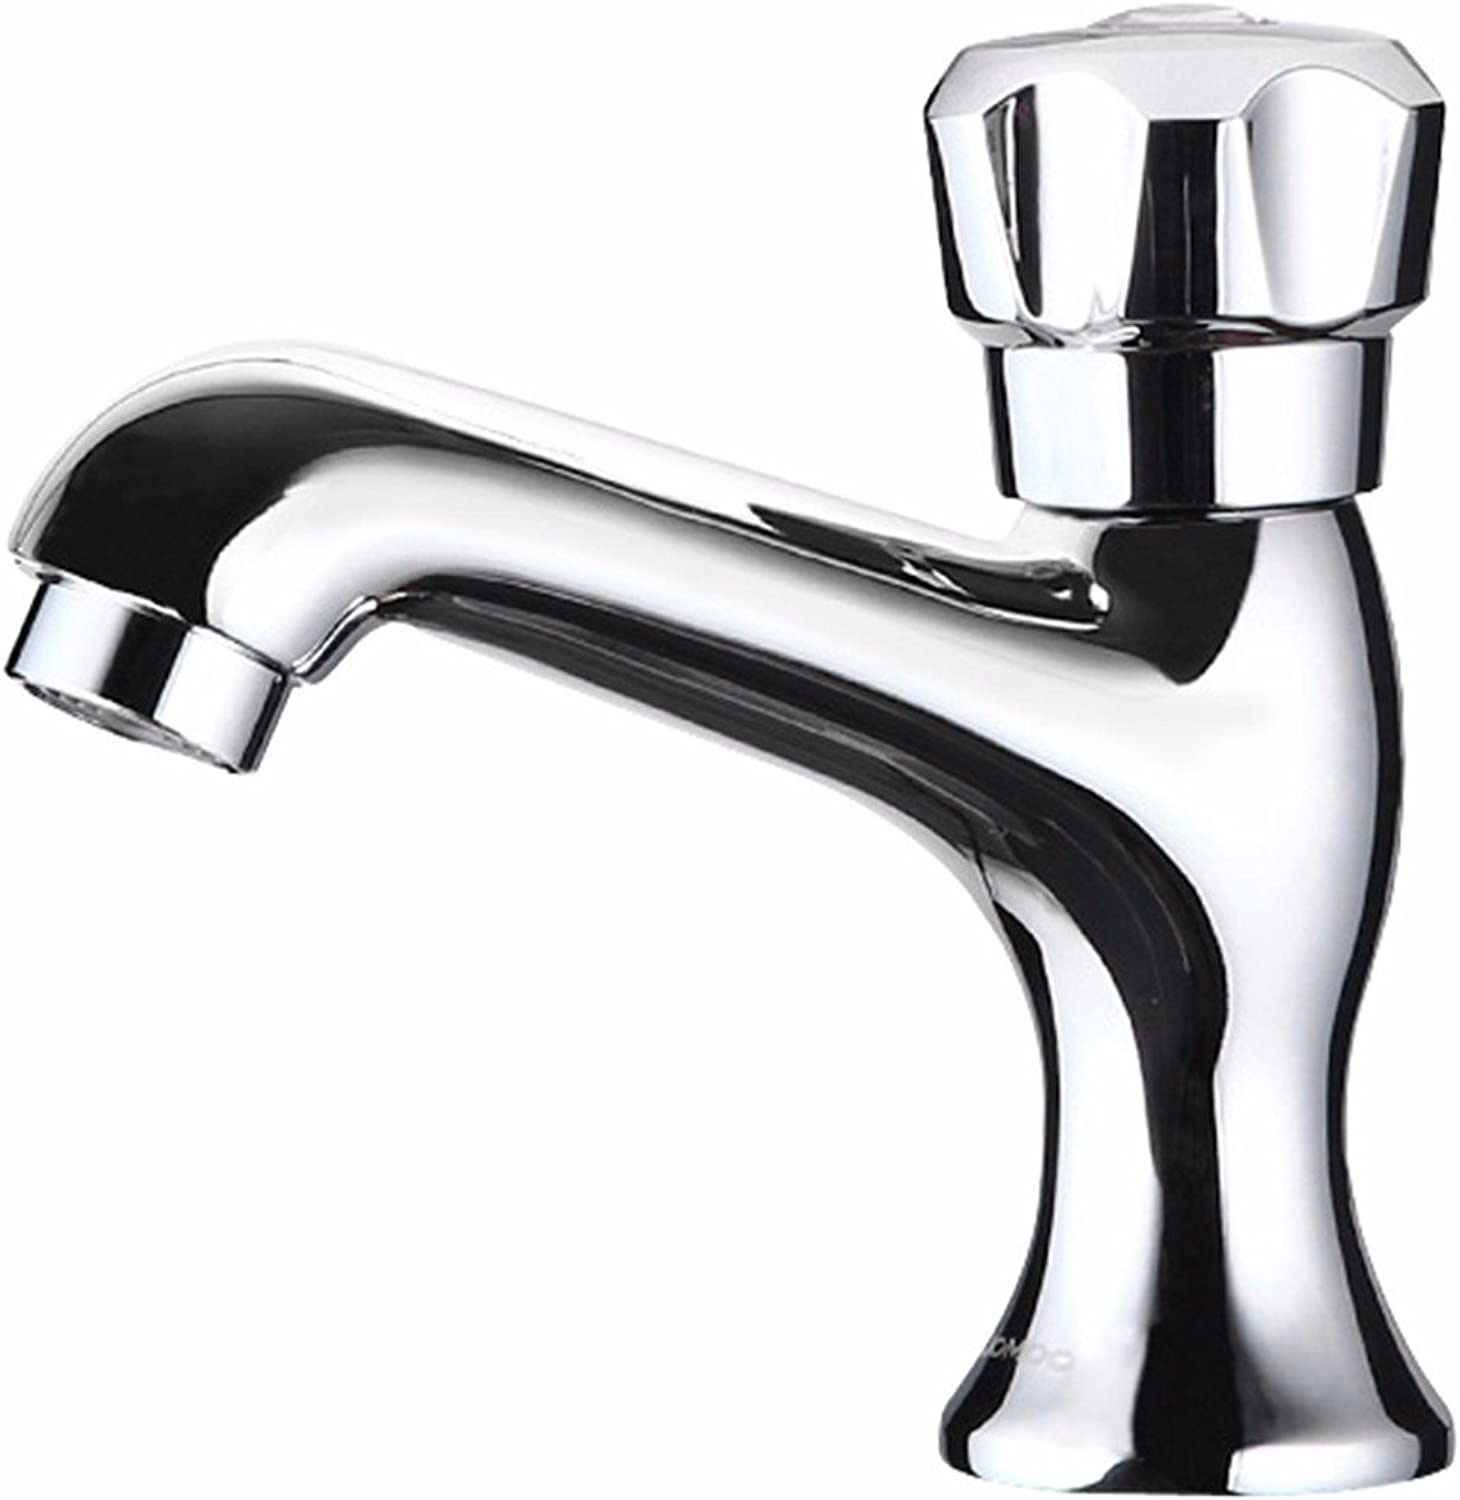 LHbox Basin Mixer Tap Bathroom Sink Faucet The health of the whole copper Express Open single cold single handle single hole basin Faucet